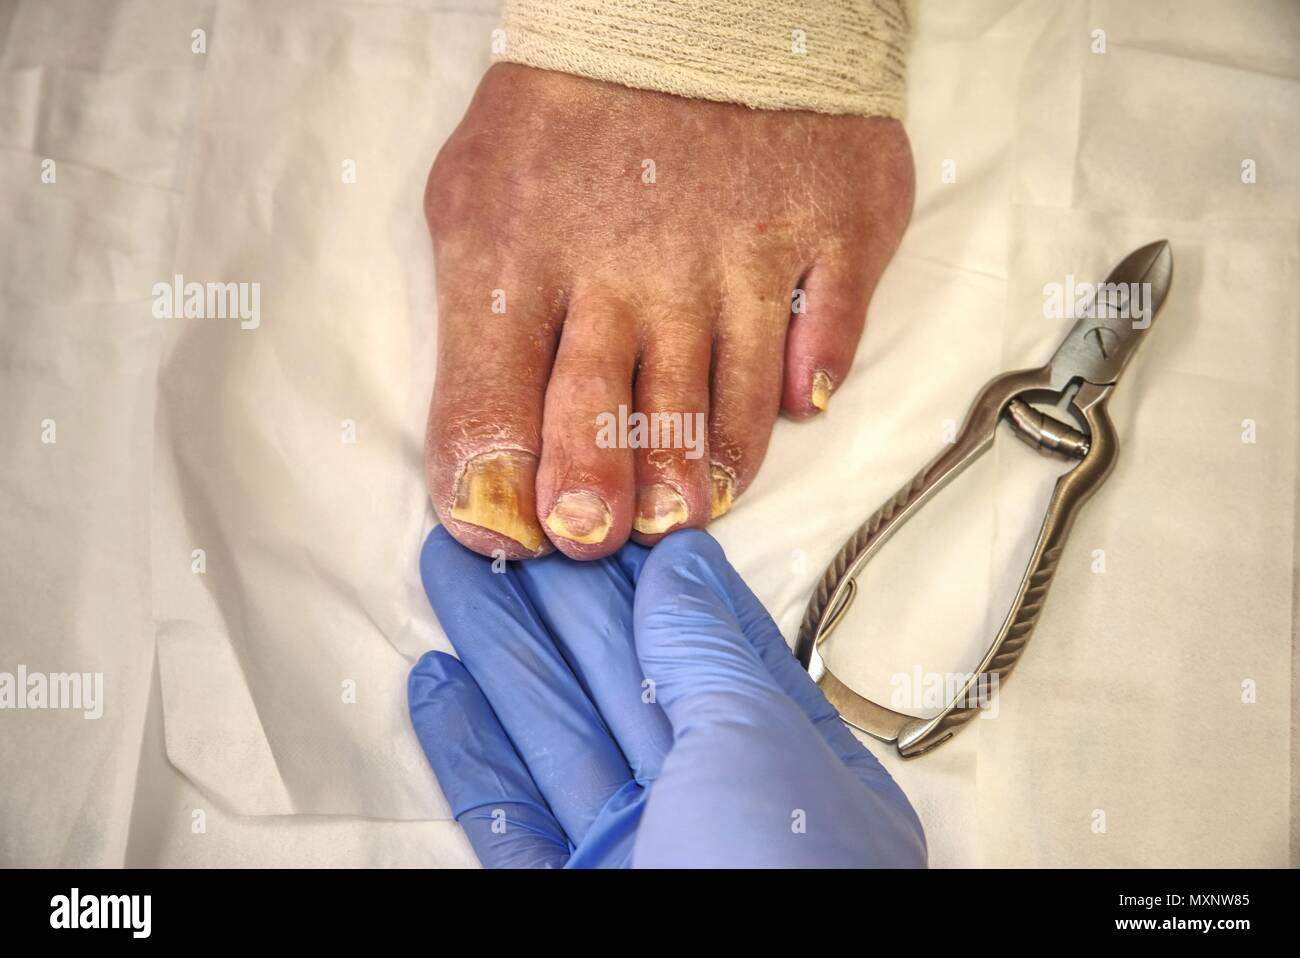 Pedicure stages. Podology, cutting skins. Professional pedicure in the hospital. Nail clipping at the feet. - Stock Image